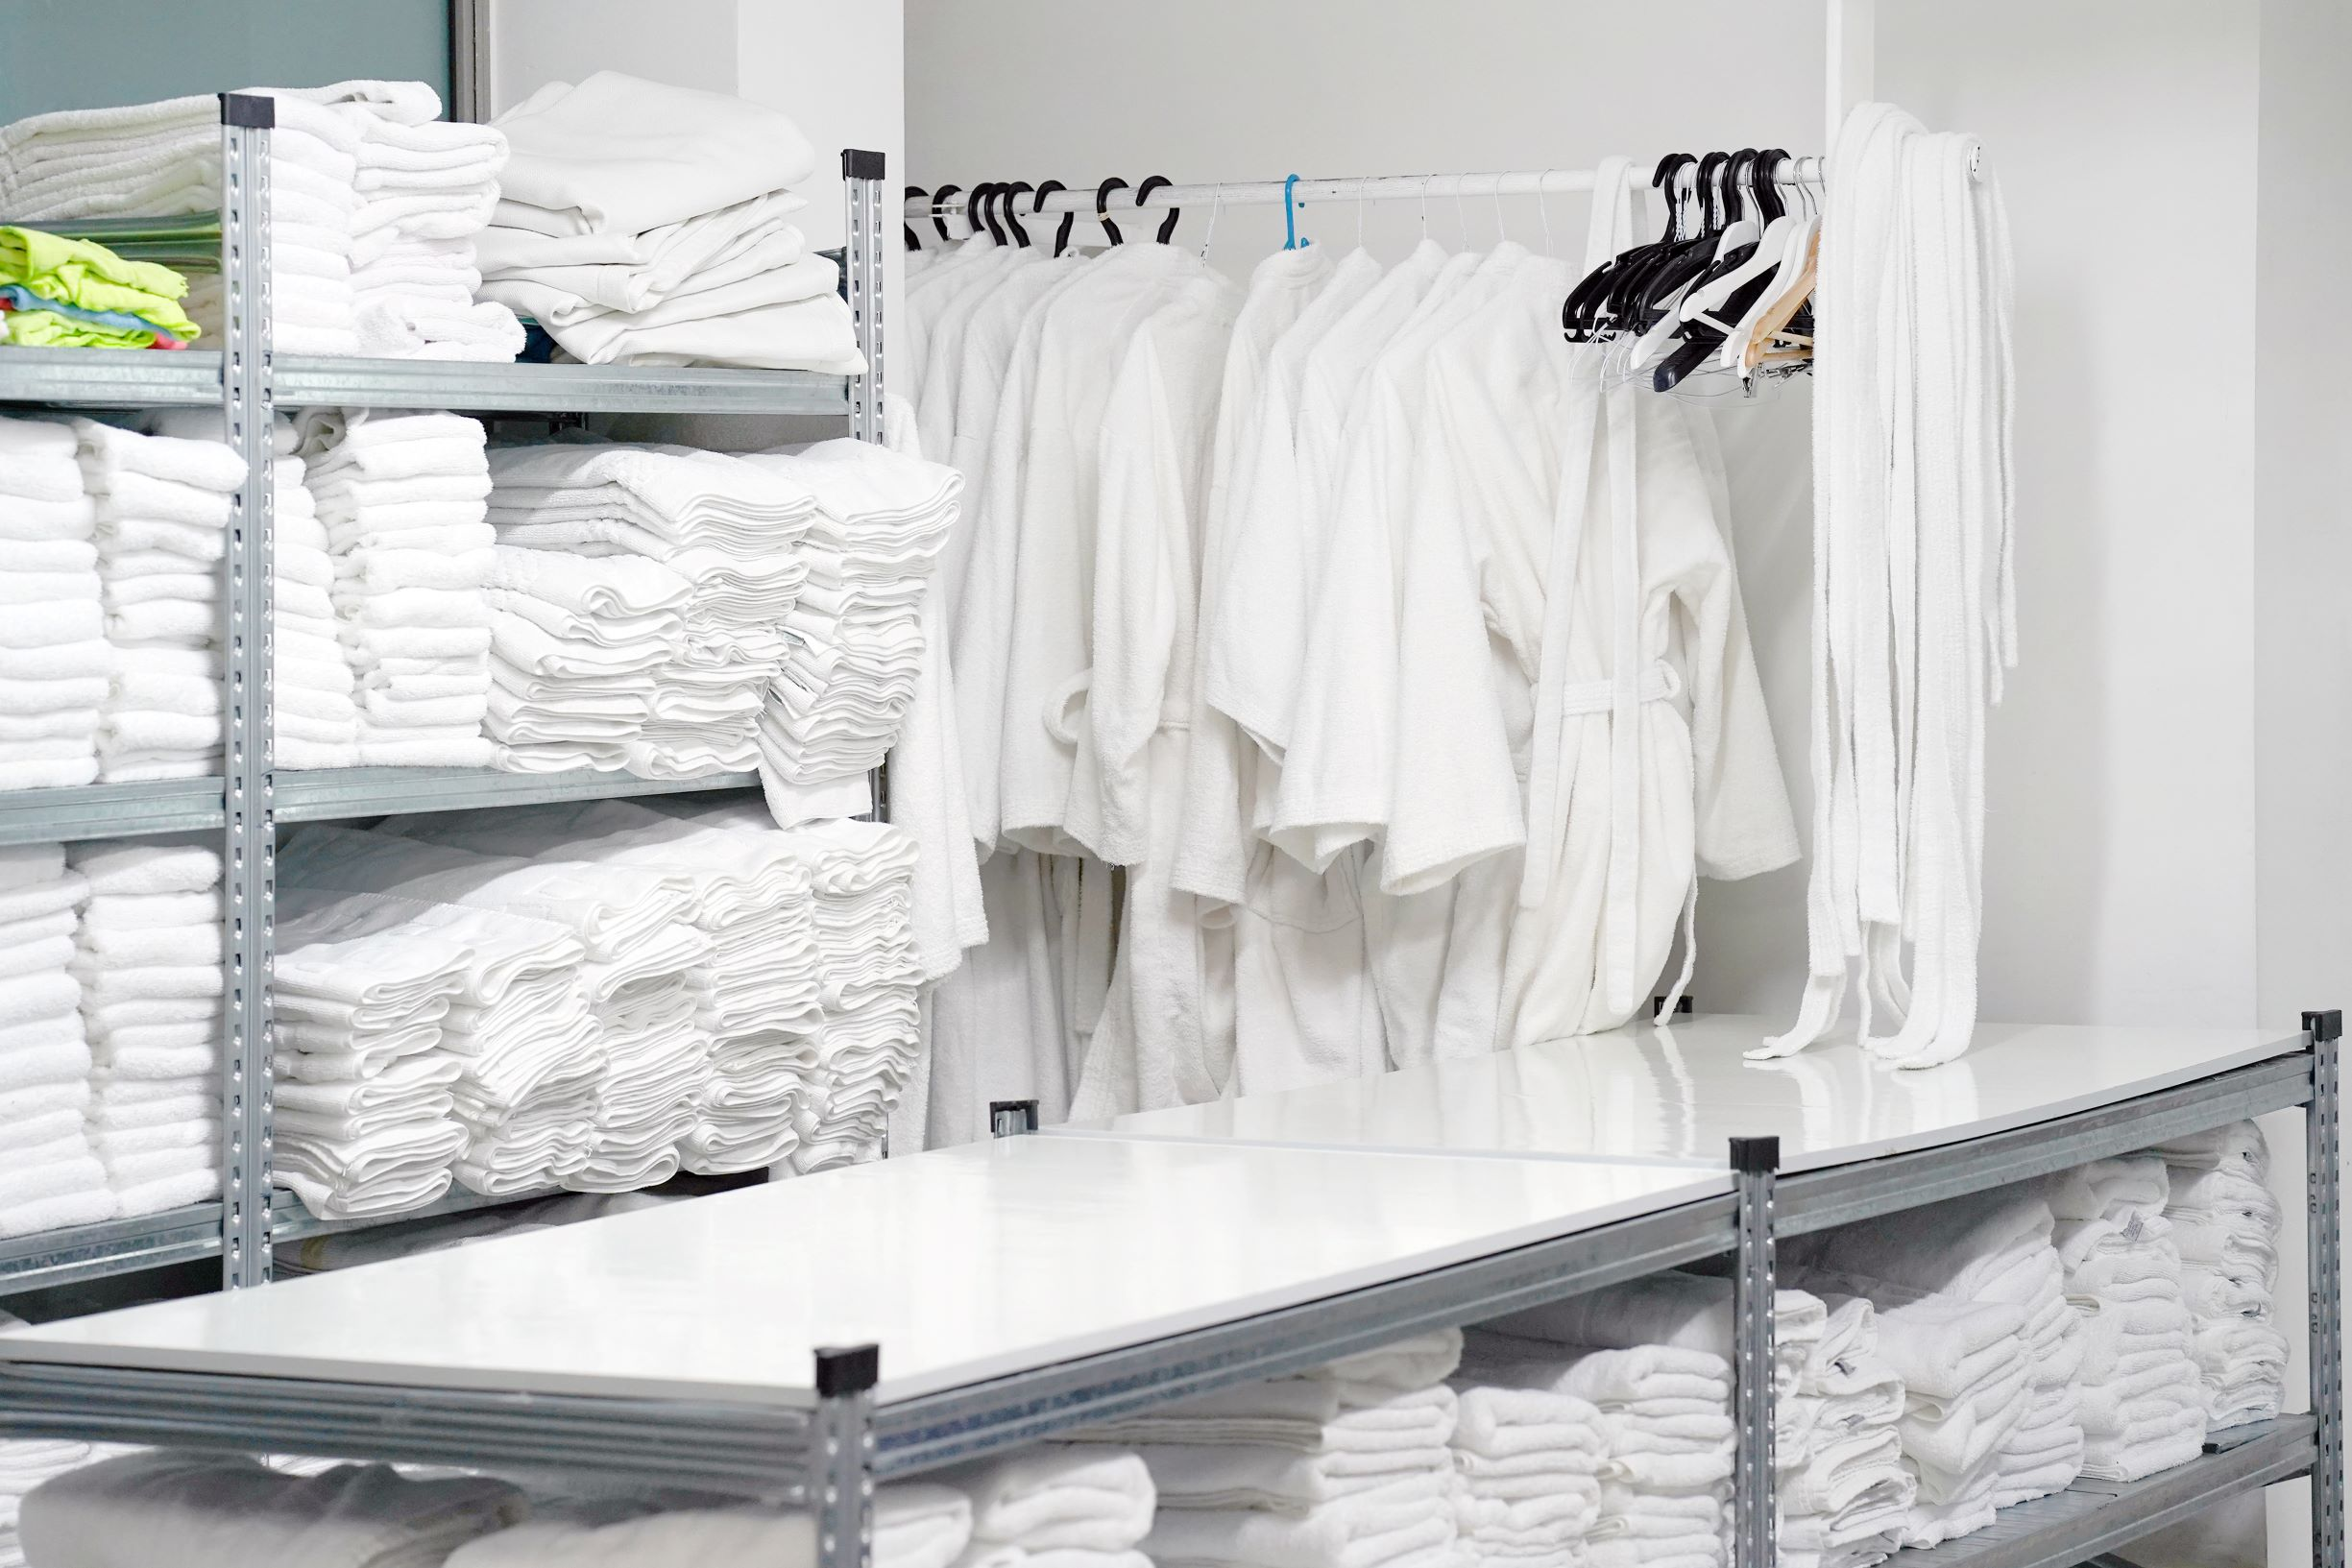 Dry-clean and laundry services companies